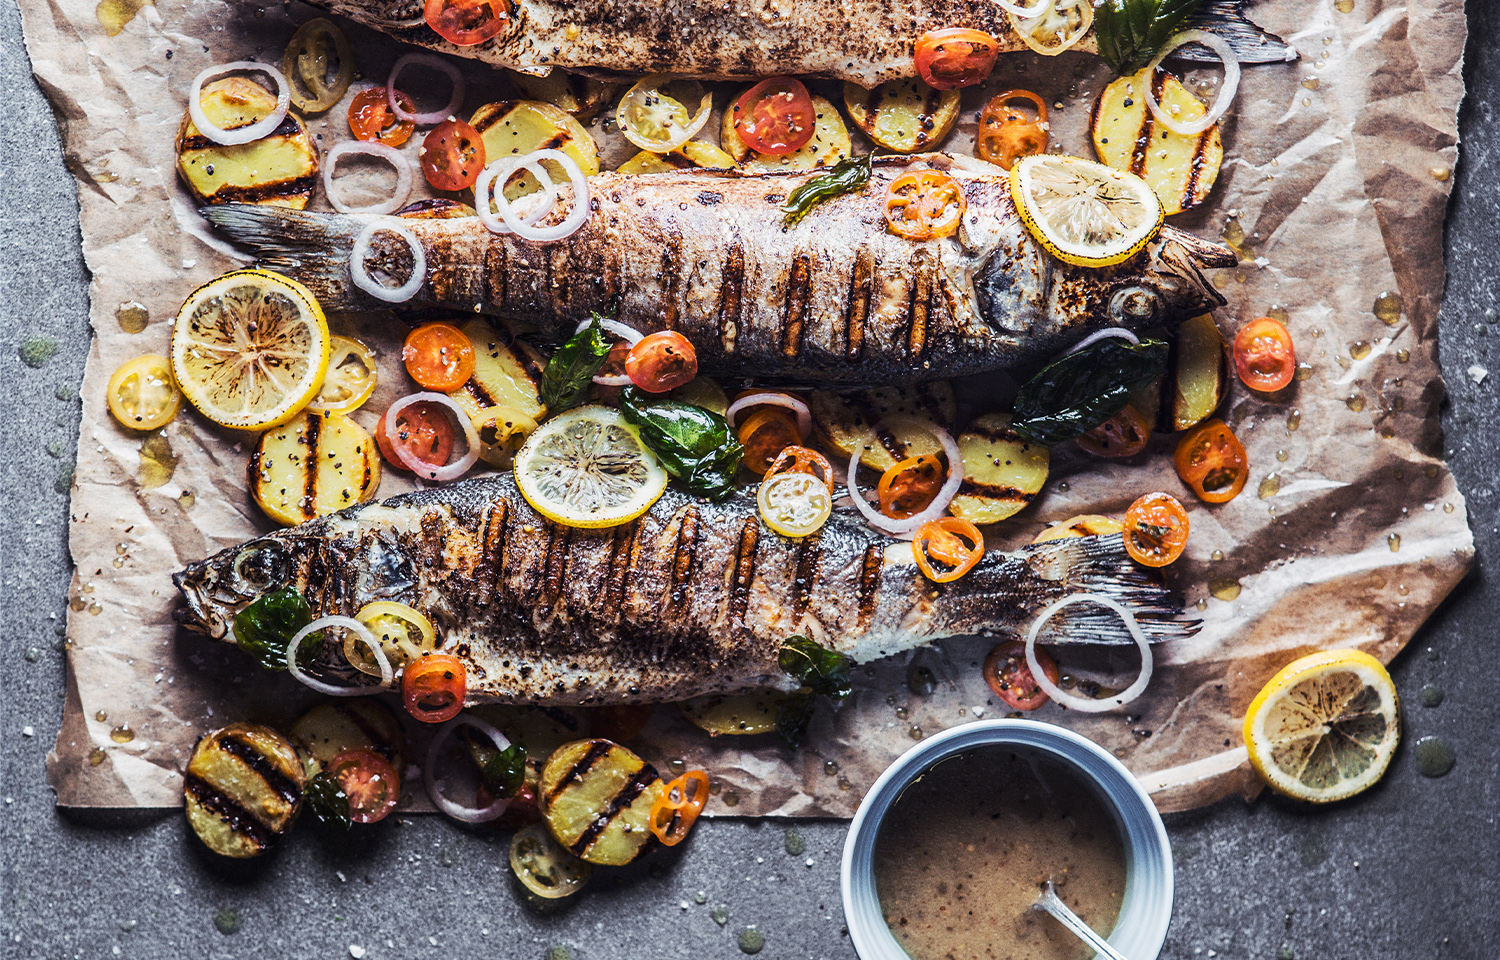 Grilled Sea Bream with Rosemary Potatoes